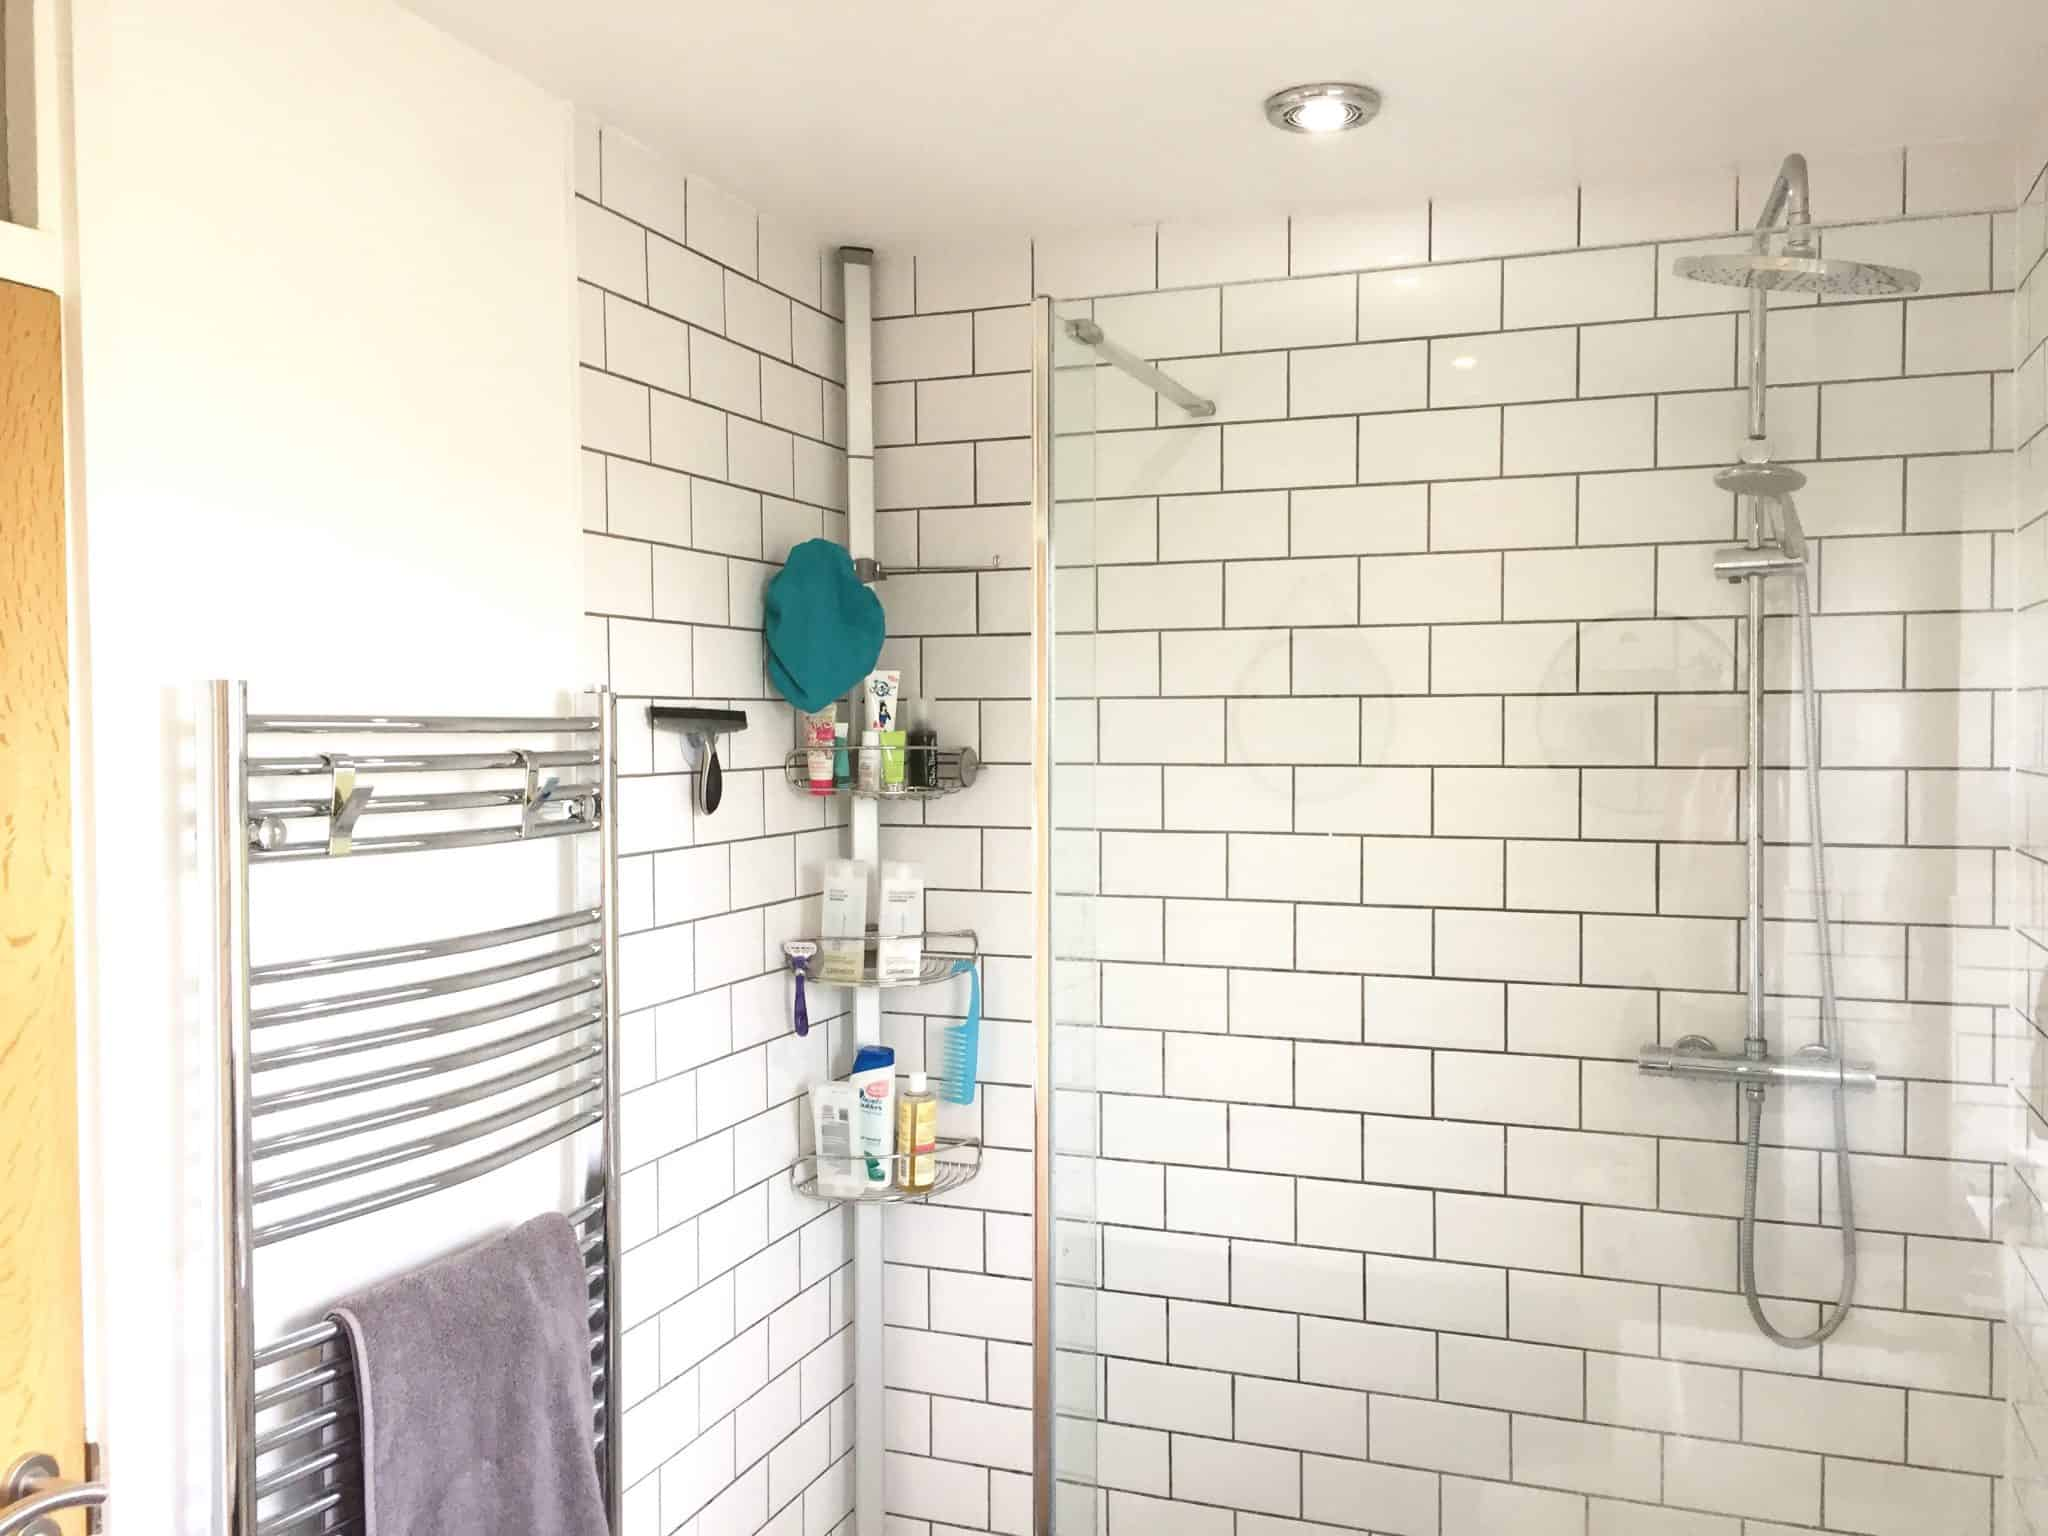 Walk in shower and chrome towel rail with monochrome tiles